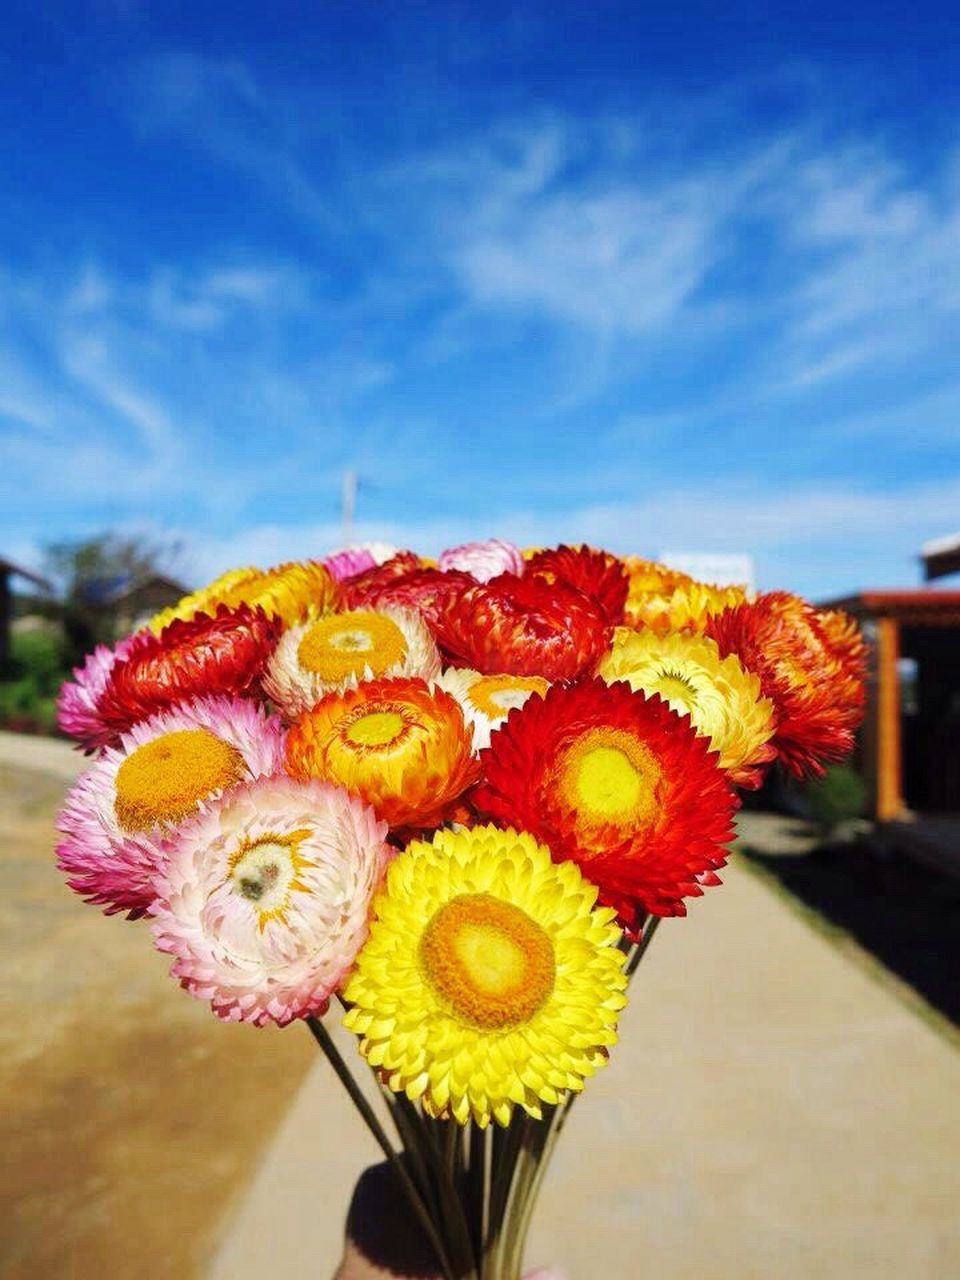 flower, fragility, flower head, close-up, no people, day, beauty in nature, freshness, multi colored, sky, outdoors, nature